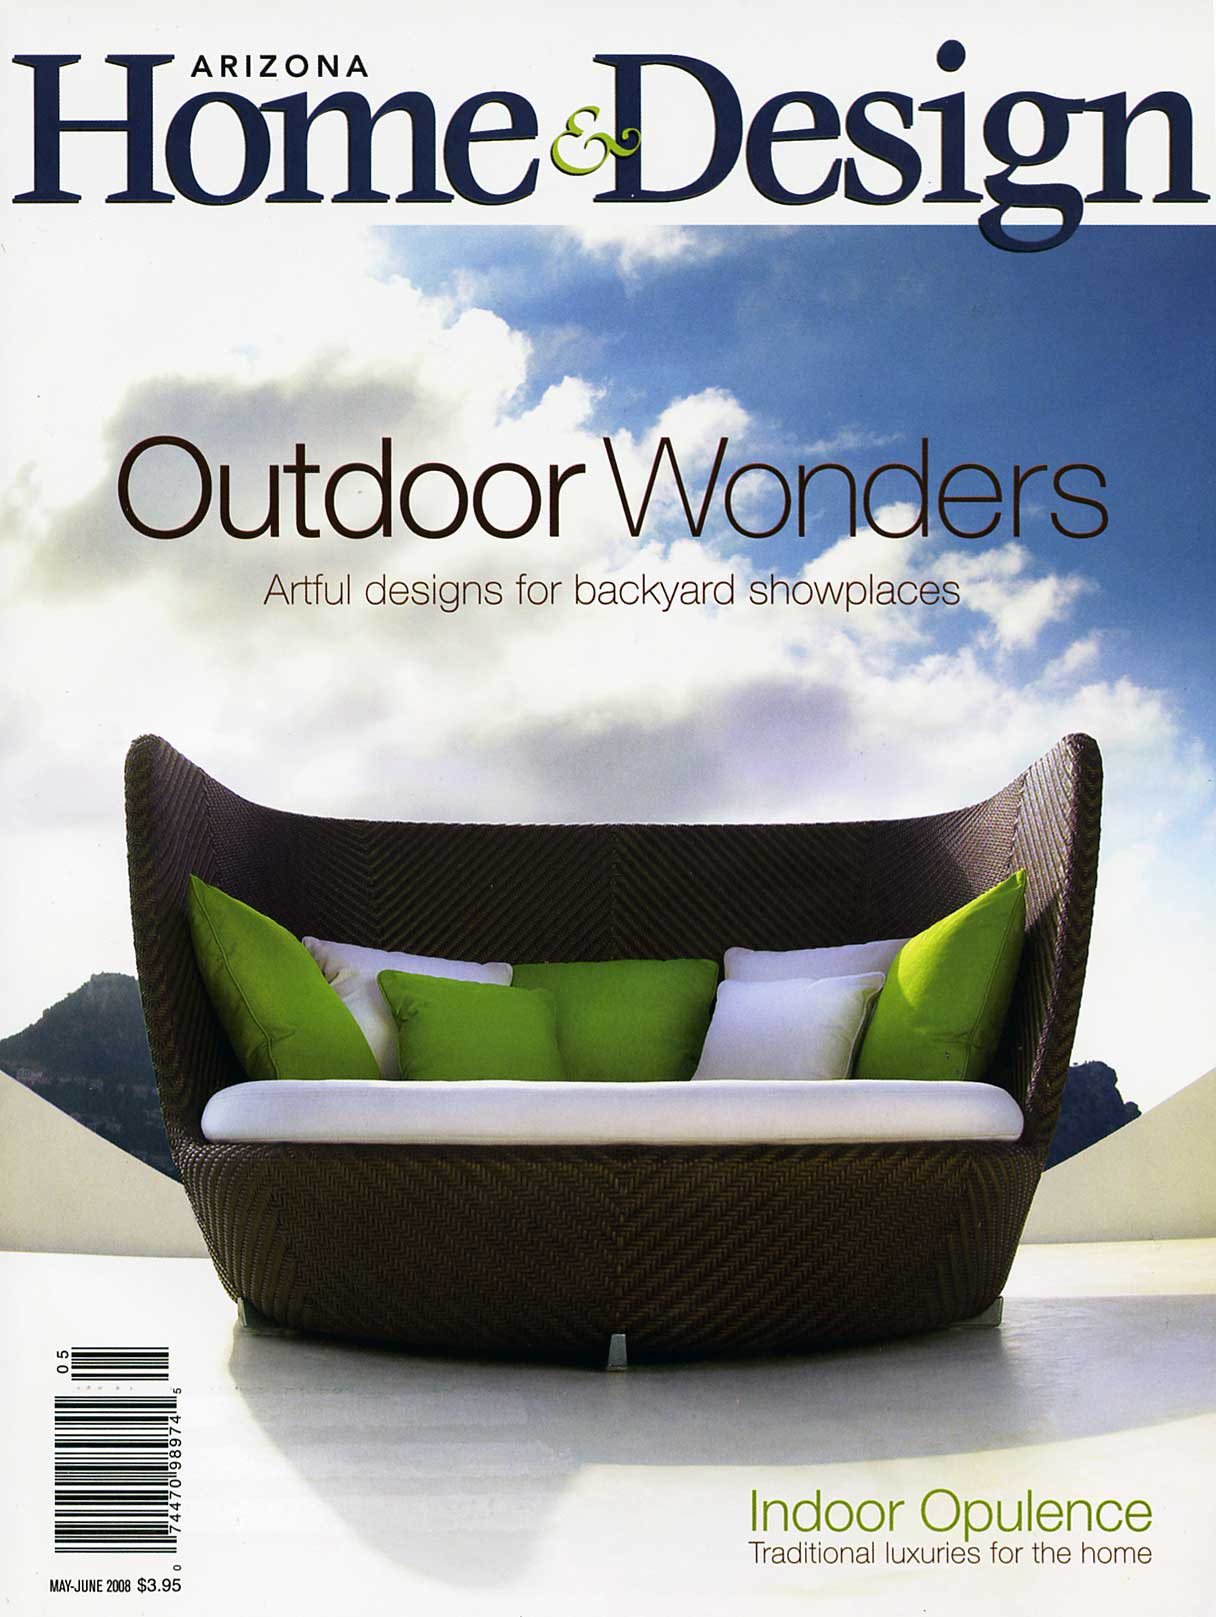 Home design magazines 18371 hd wallpapers background - Magazine for home decor style ...